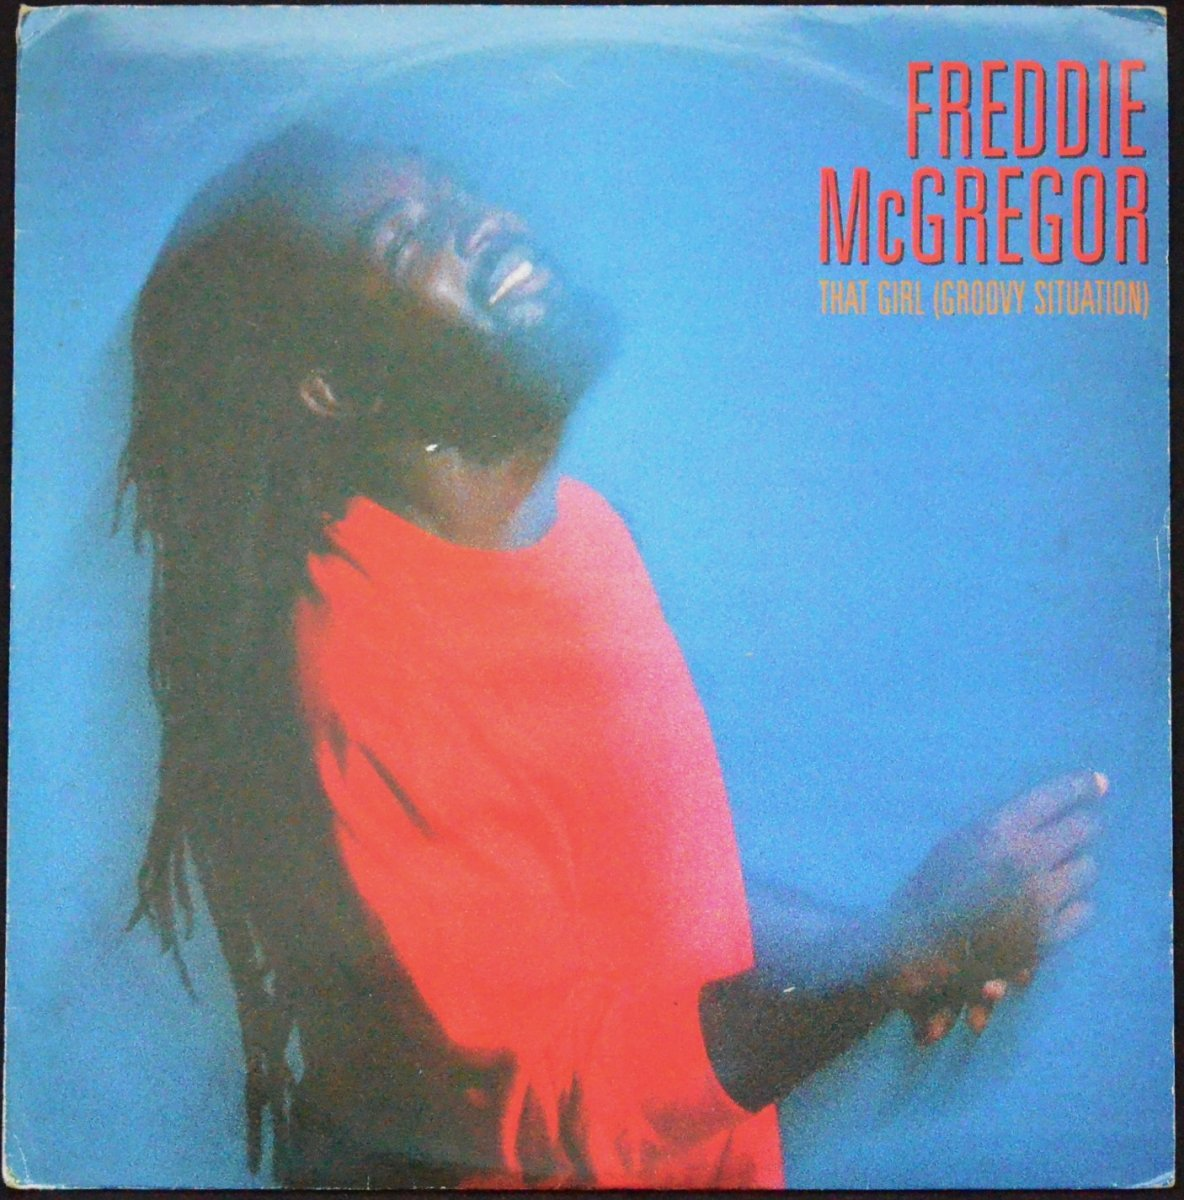 FREDDIE MCGREGOR ‎/ THAT GIRL (GROOVY SITUATION) (12